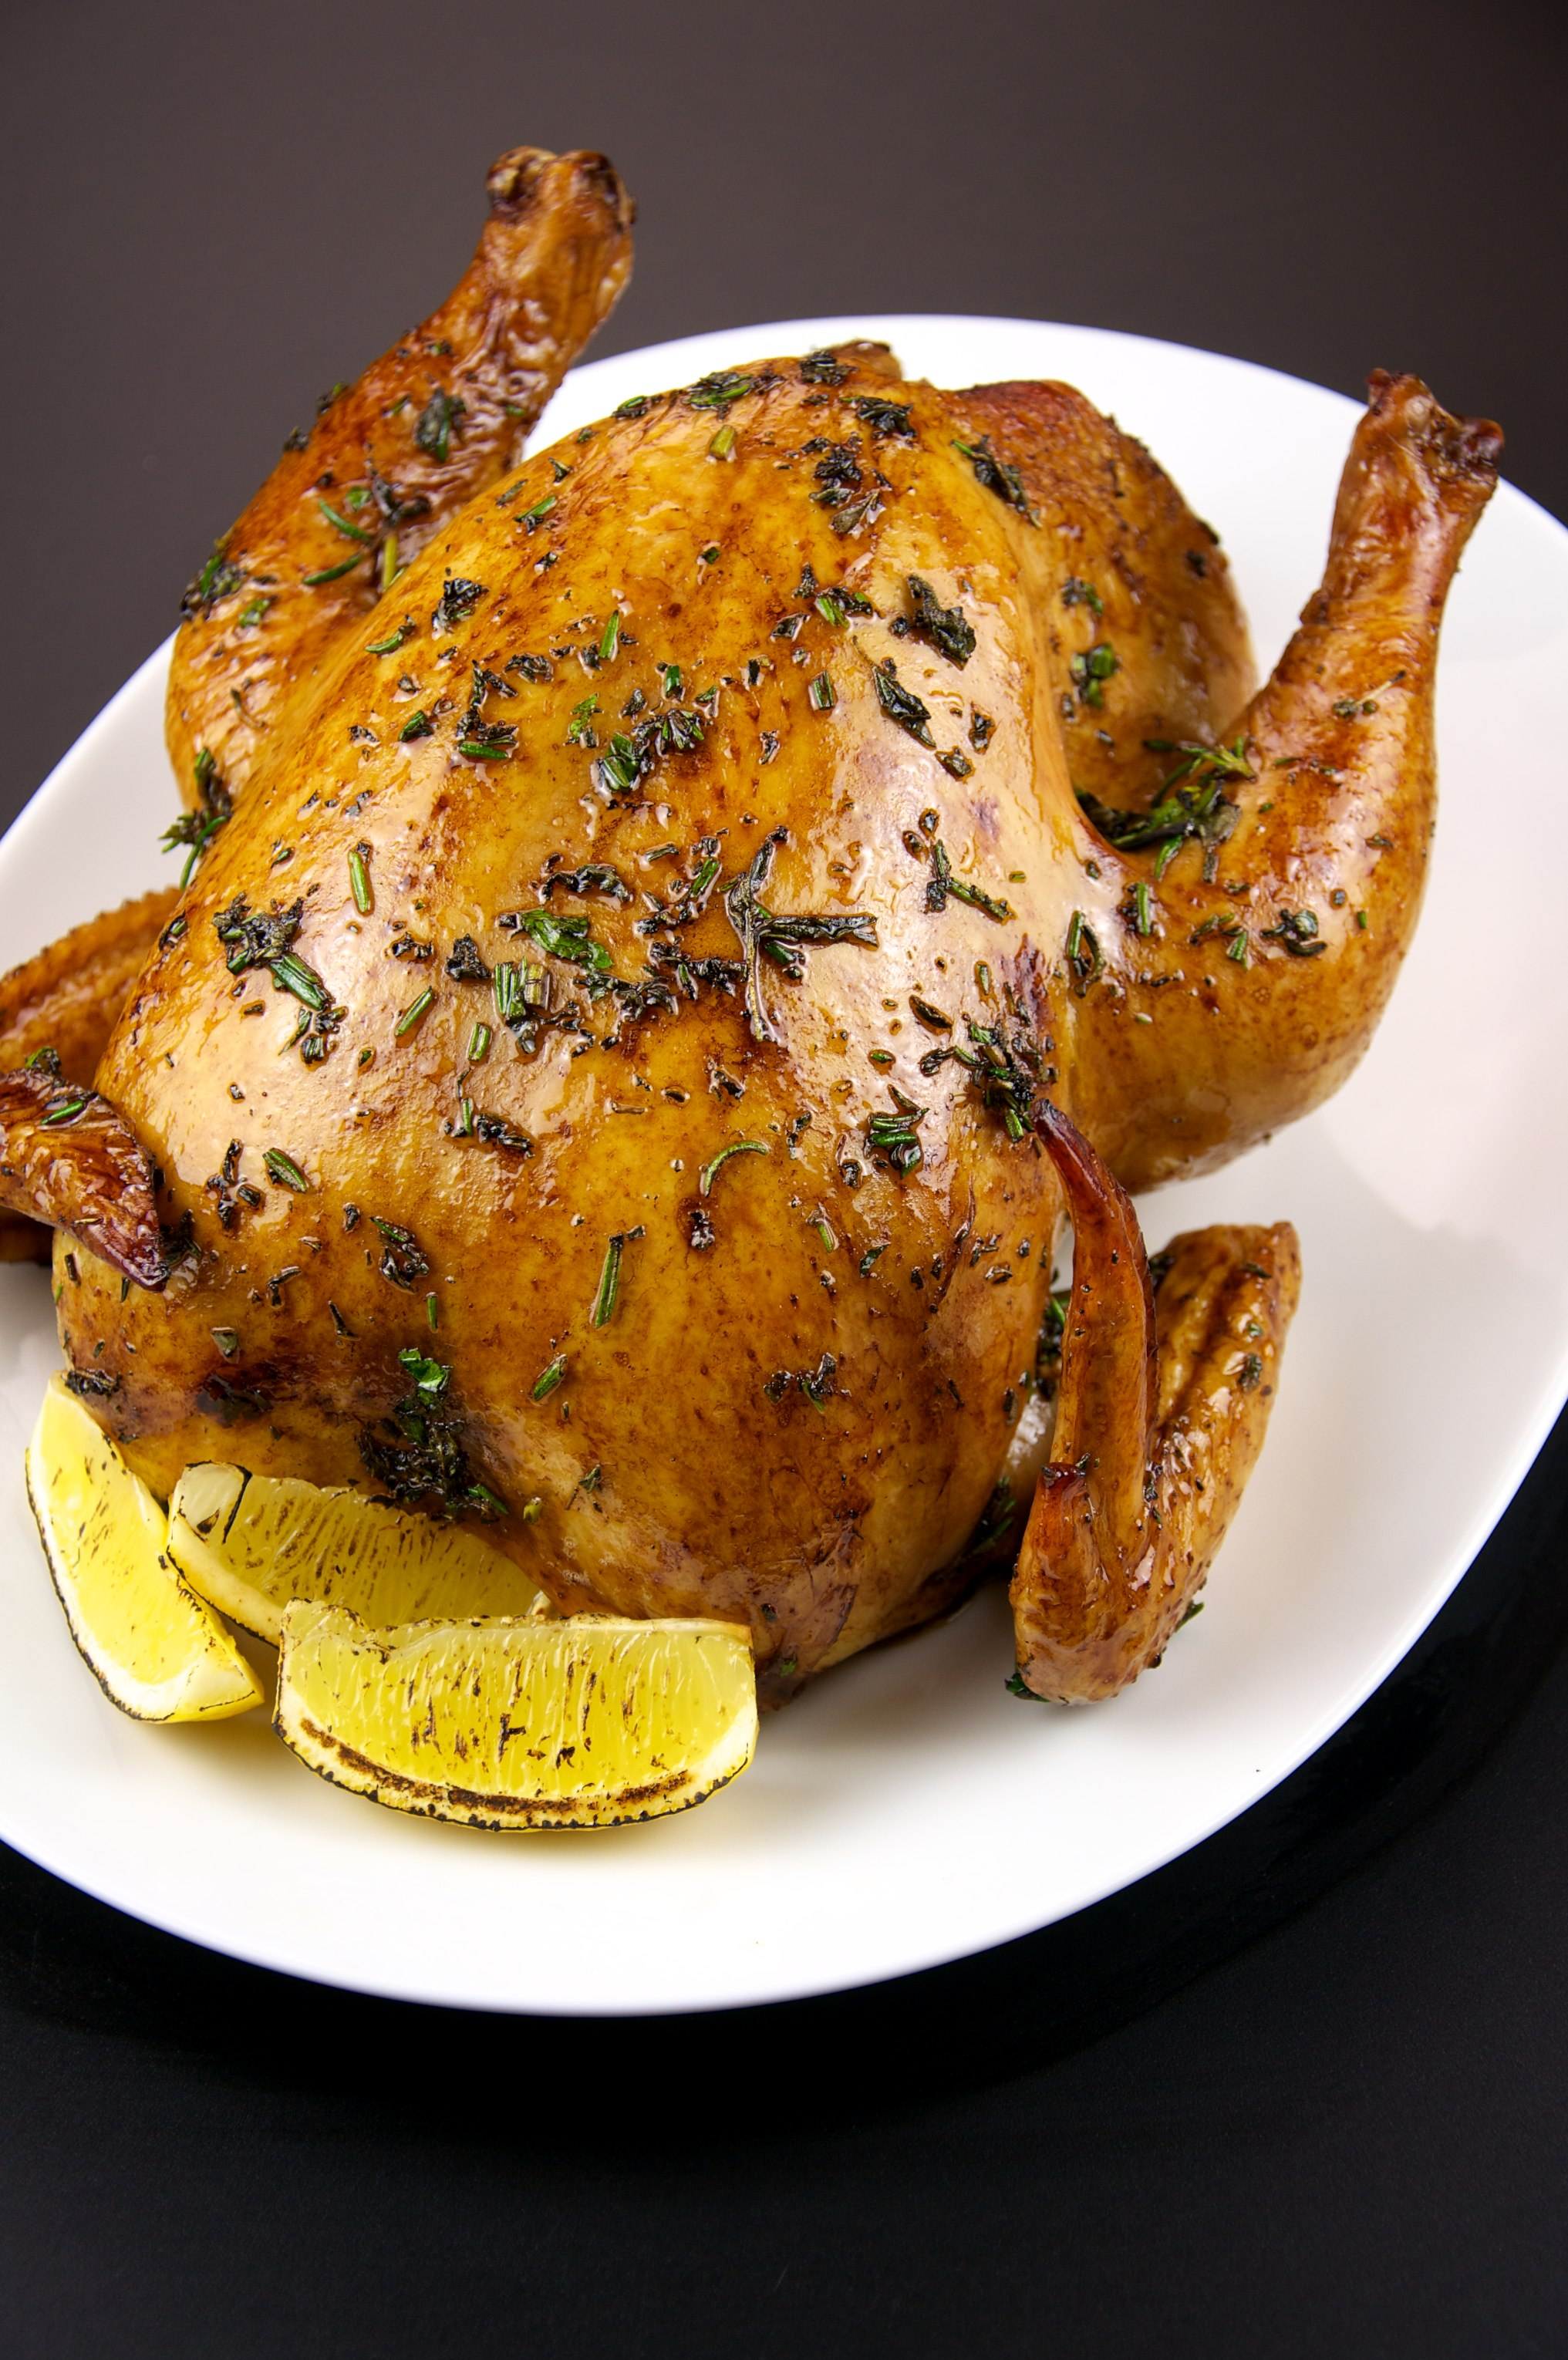 File:Max's Roasted Chicken - Evan Swigart.jpg - Wikimedia Commons